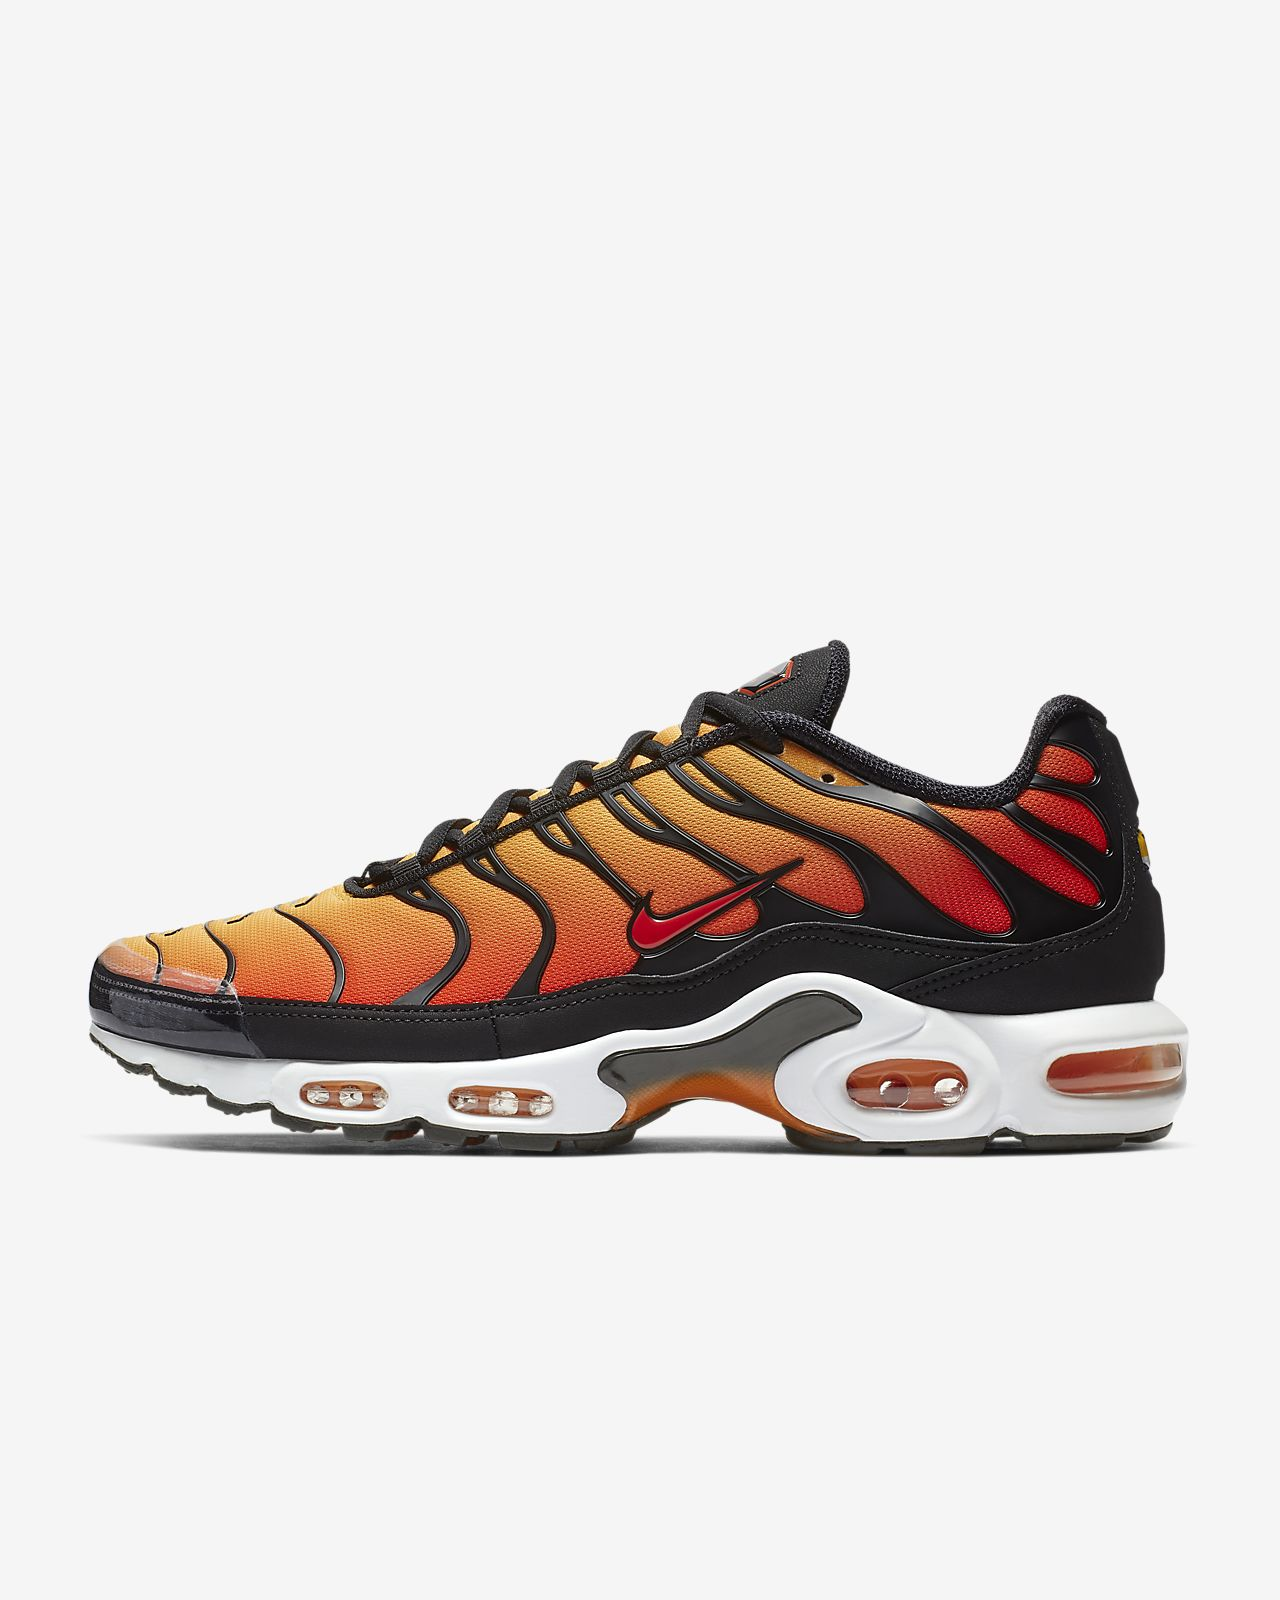 Nike Air Max Plus OG Shoe